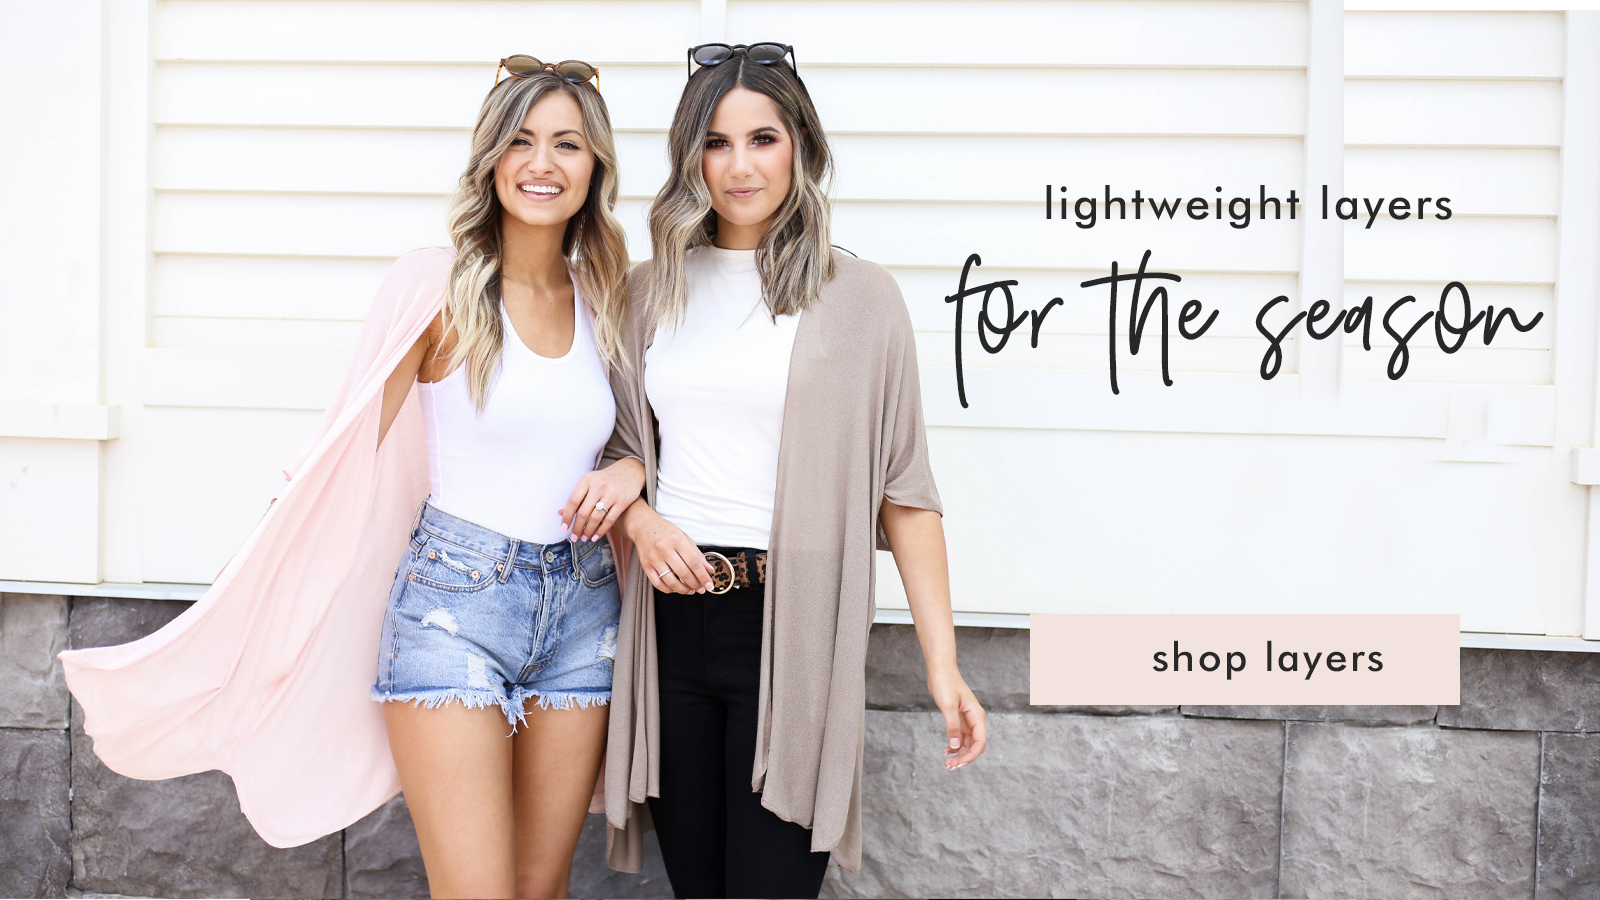 two models waering light cardigans in pink and nude